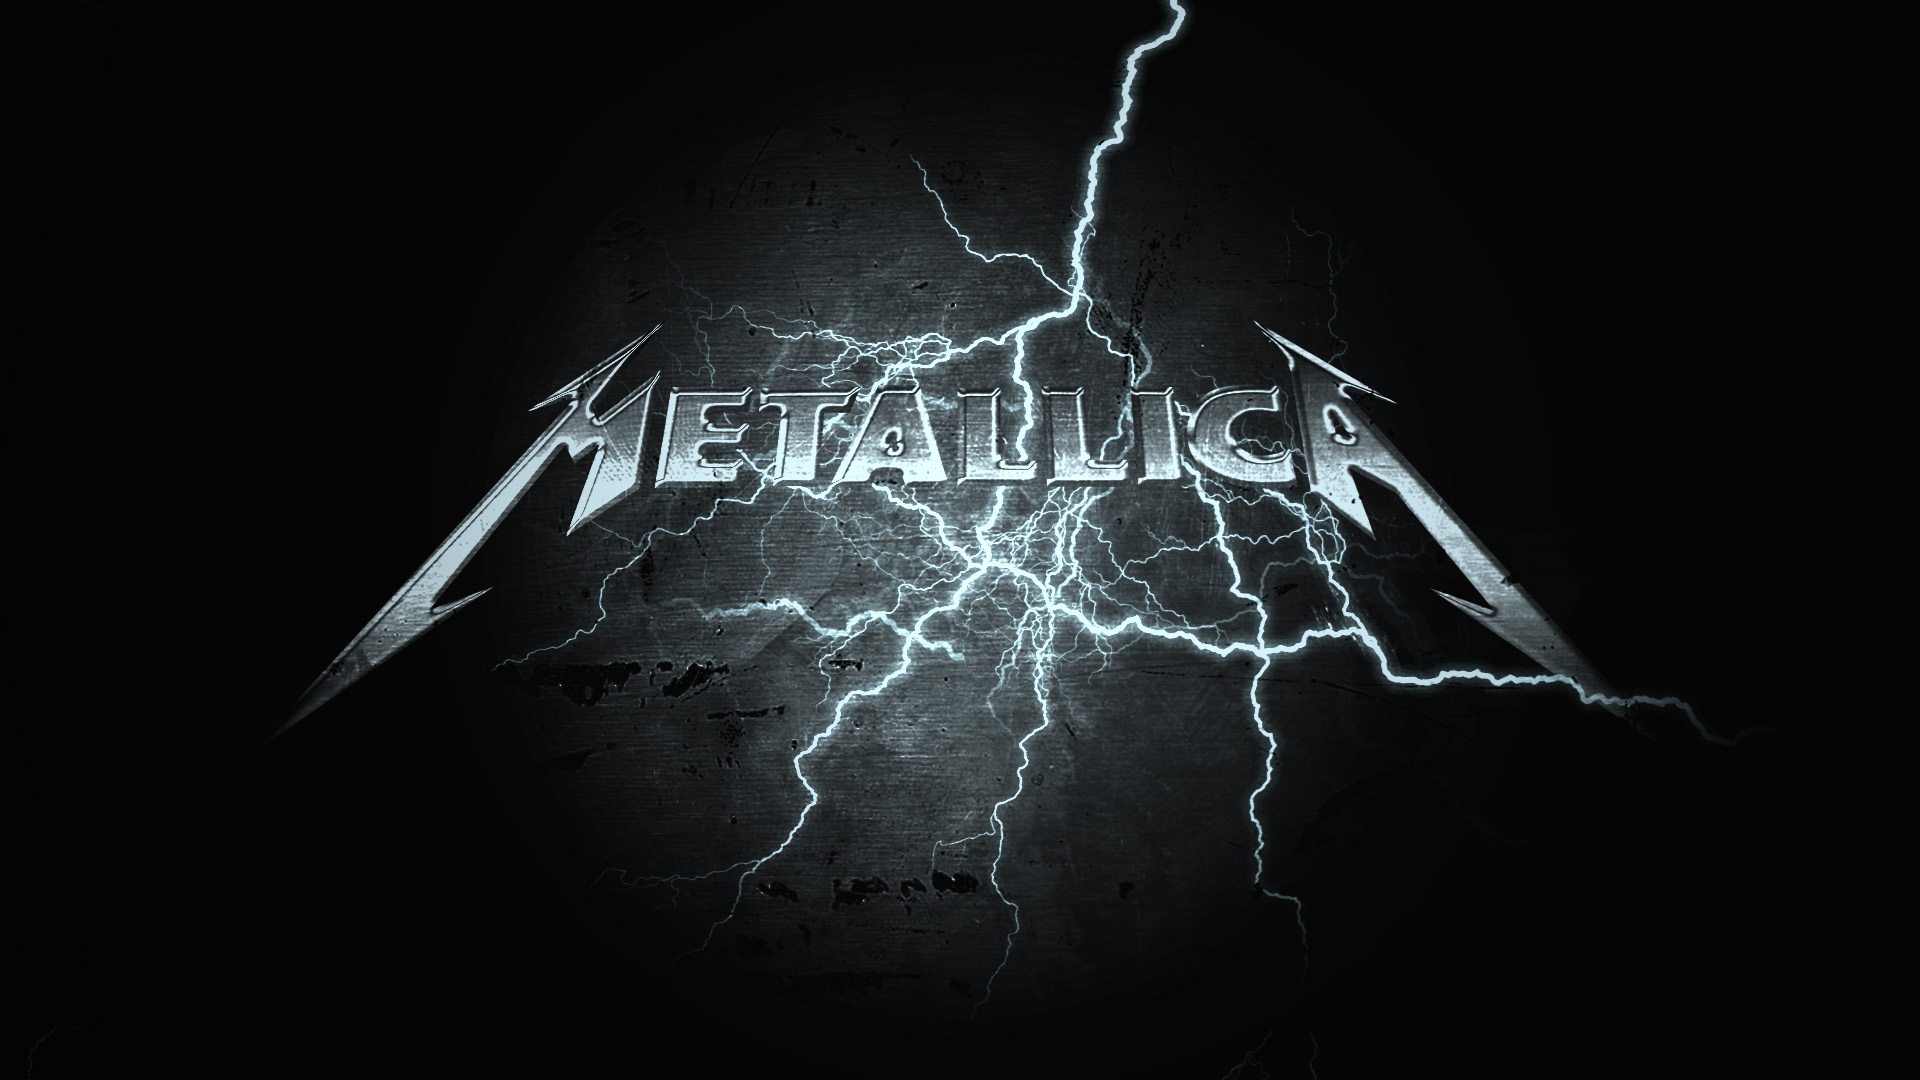 fonds d'écran metallica : tous les wallpapers metallica